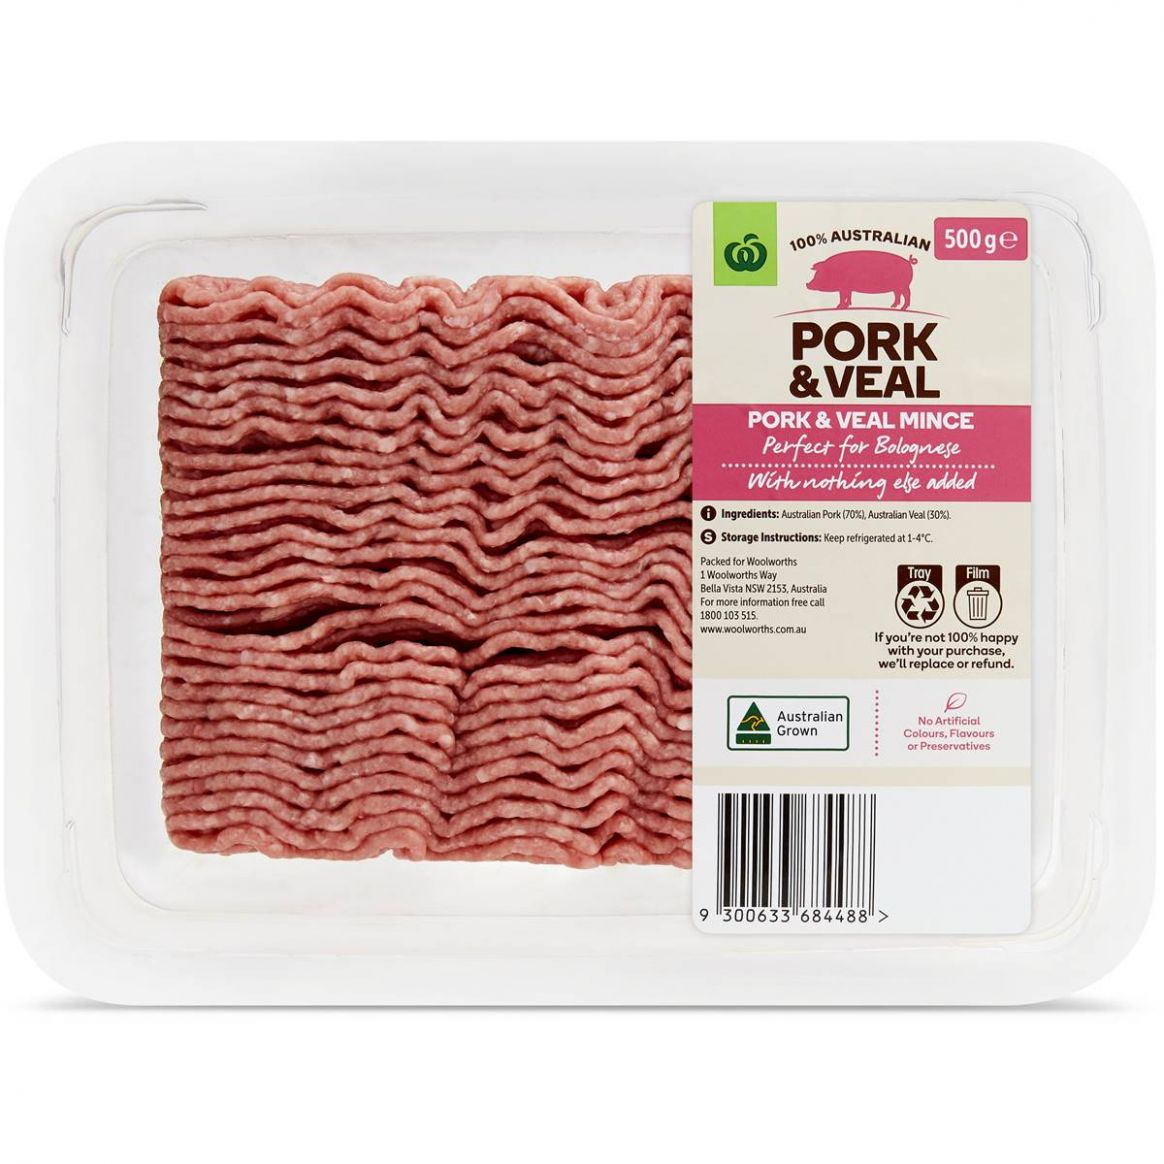 Woolworths Pork & Veal Mince 11g | Woolworths - Recipes Pork And Veal Mince